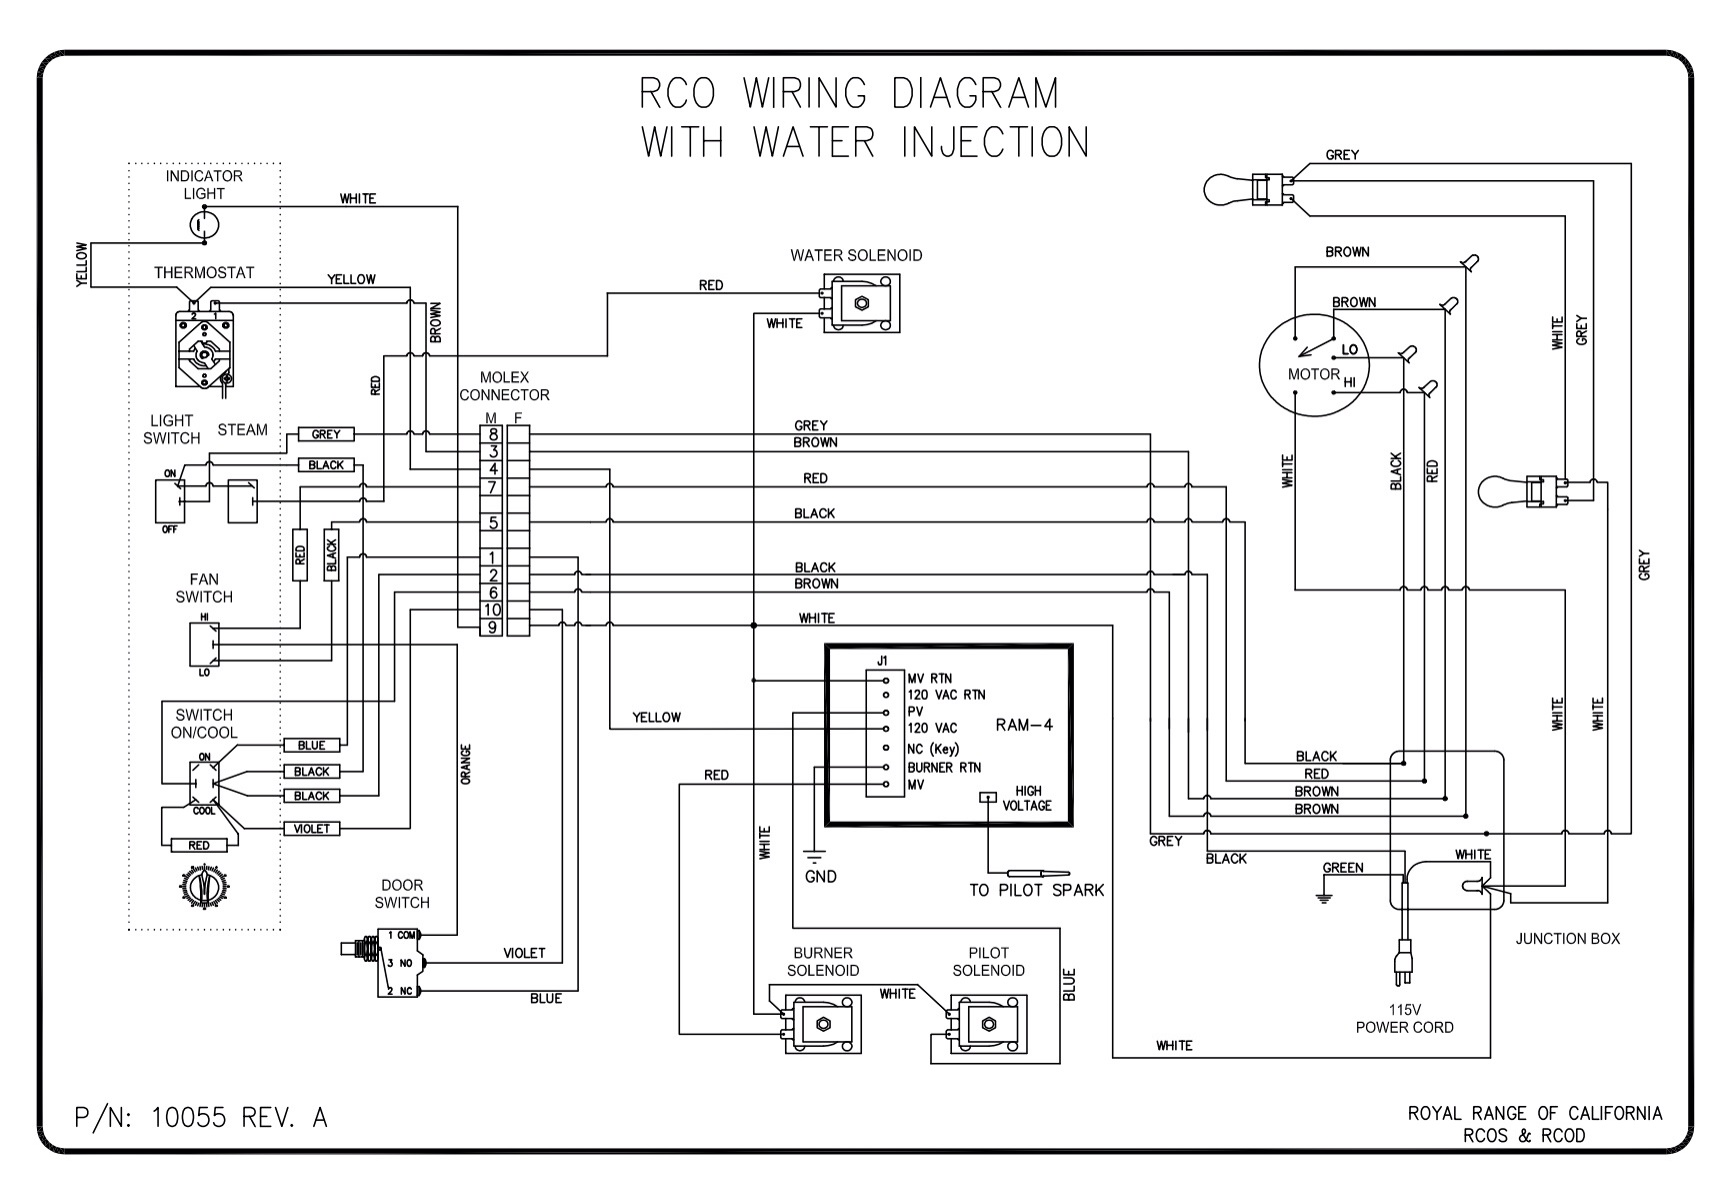 wiring diagrams royal range of california rh royalranges com imperial convection oven wiring diagram blodgett convection oven wiring diagram